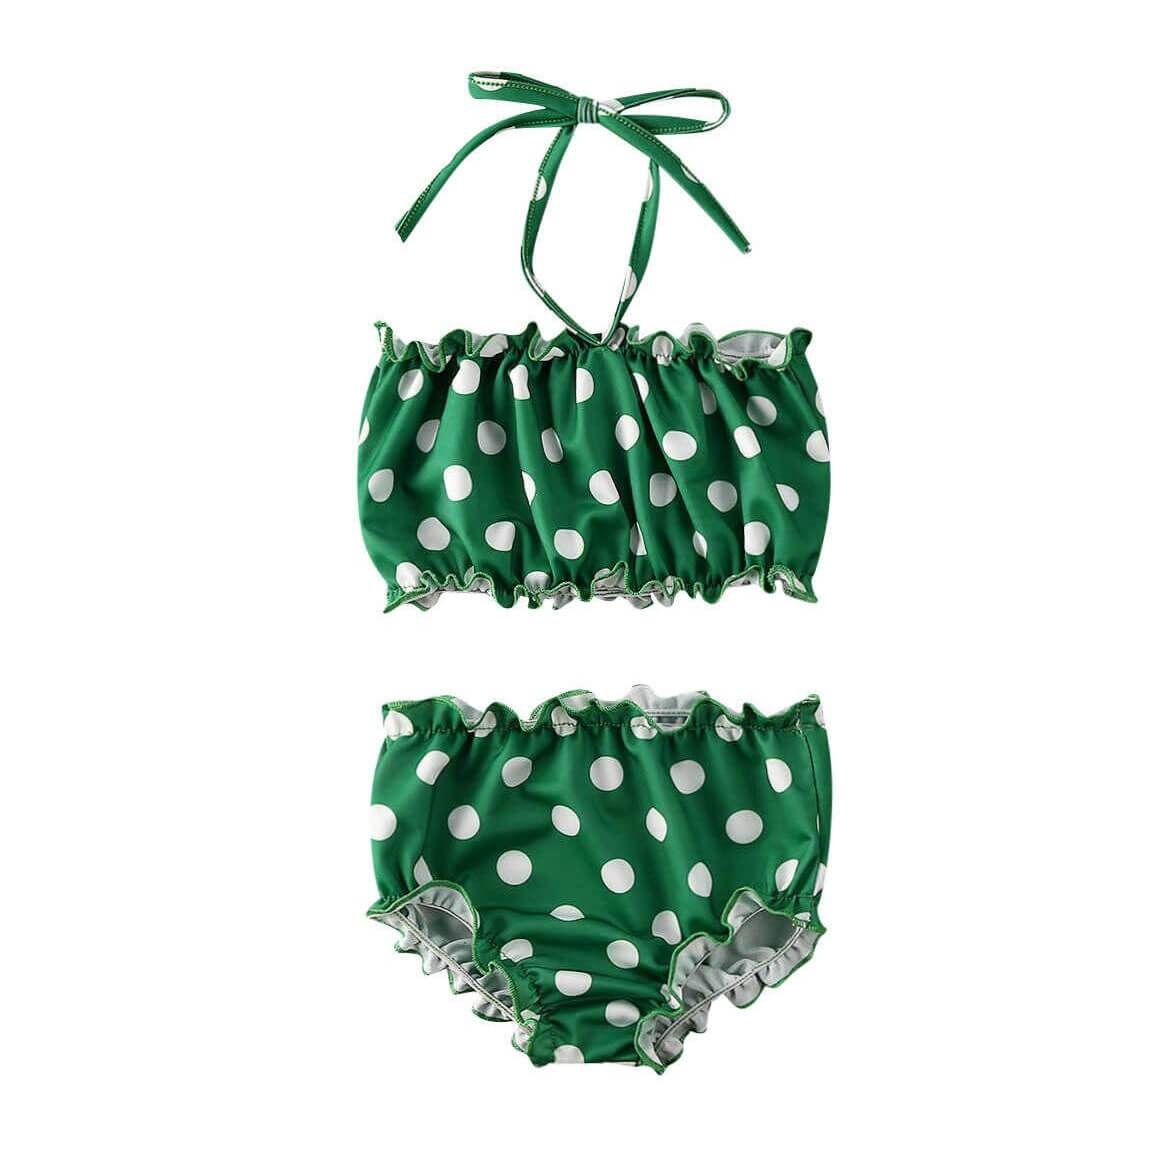 Green Polka Dot Swimsuit - The Trendy Toddlers